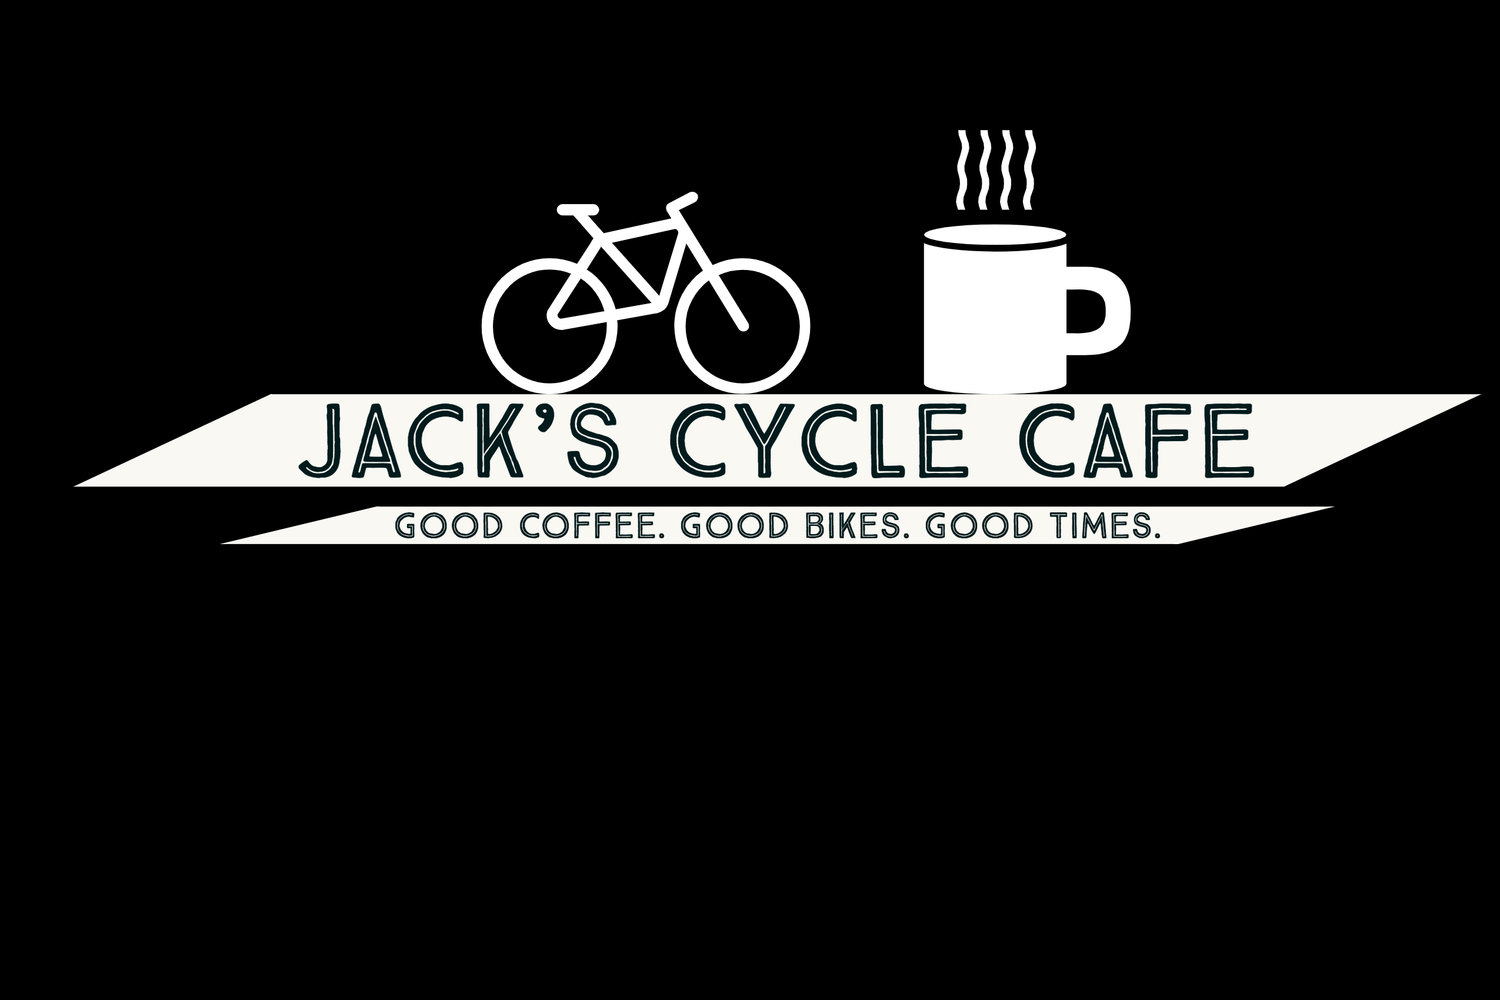 Jack's Cycle Cafe